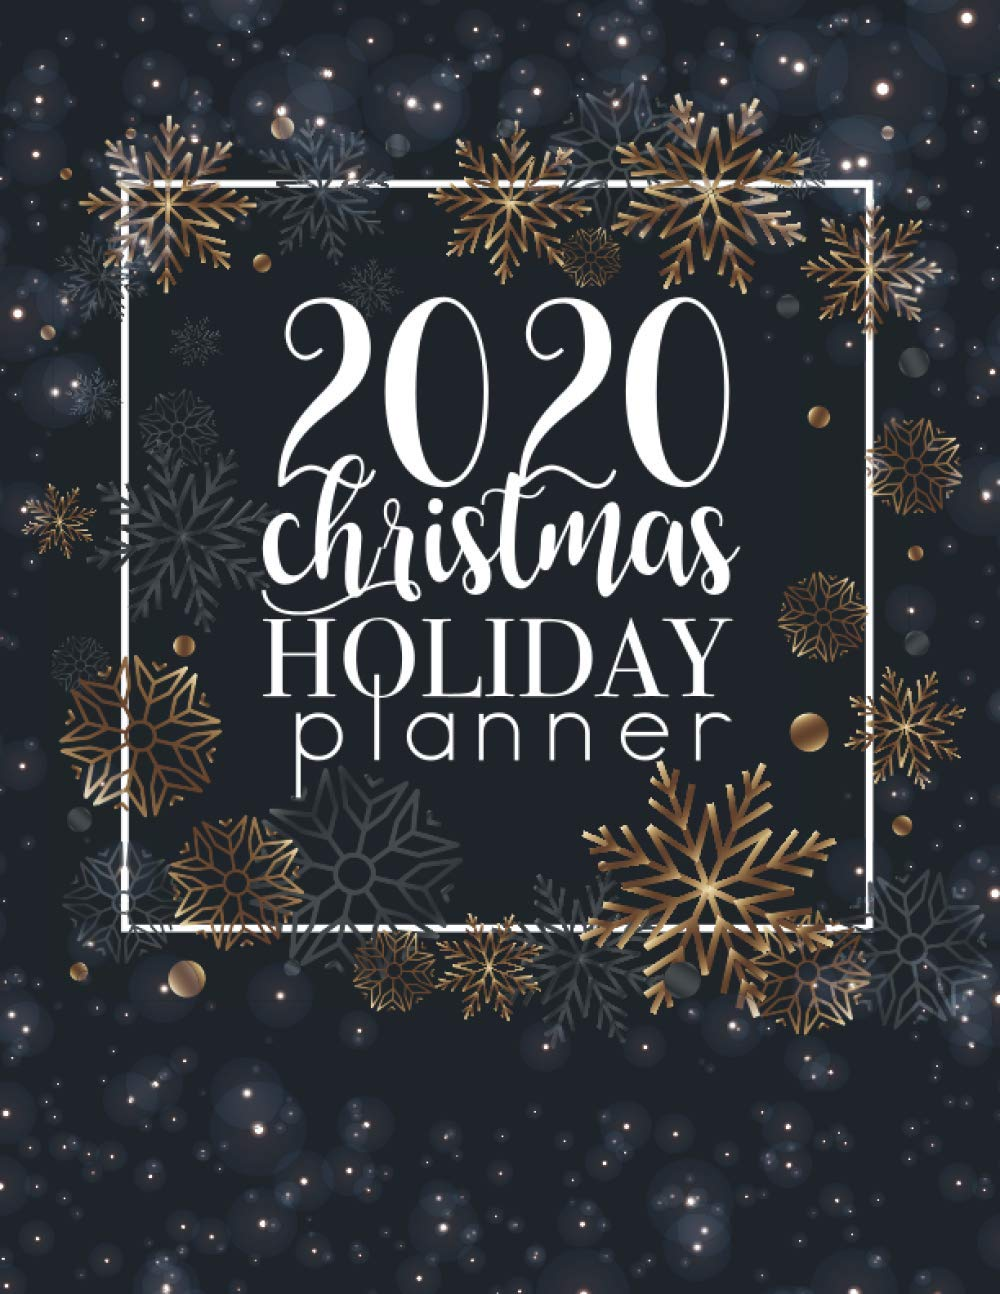 Christmas holiday planner 2020: Help you get ready for the